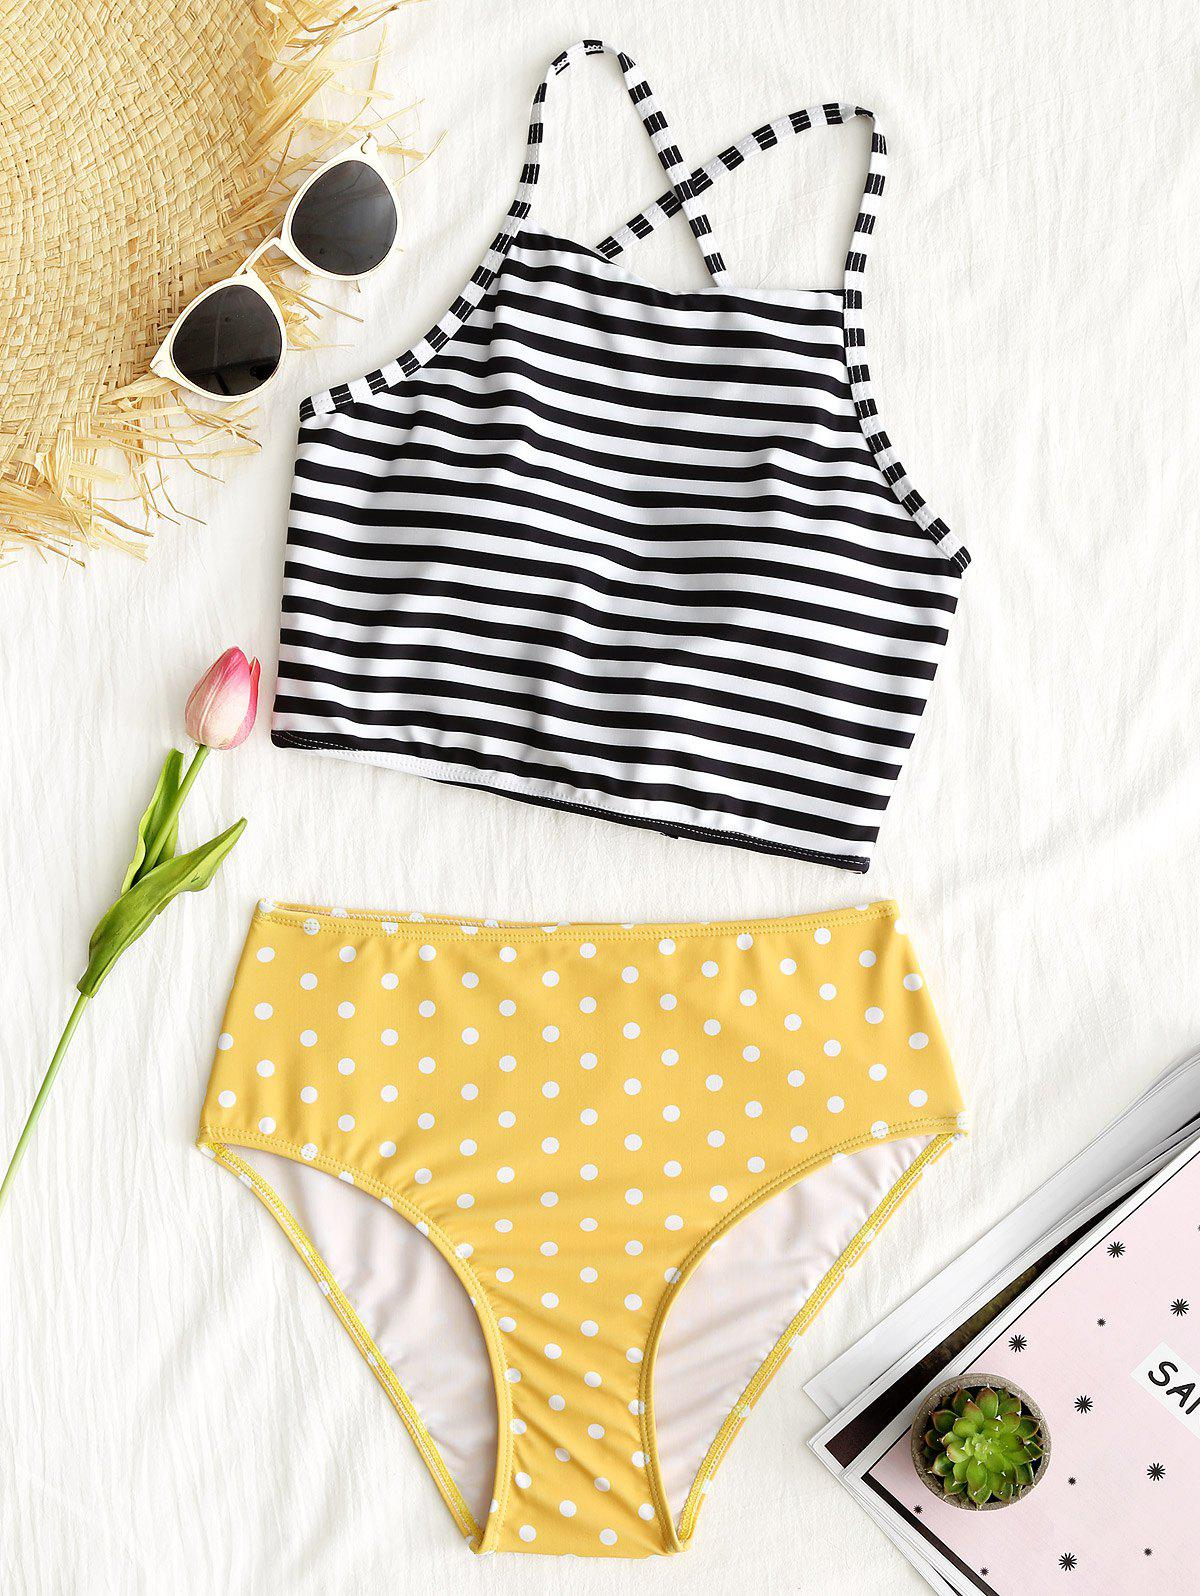 Striped Polka Dot High Waisted Bikini Set dot print high leg bikini set